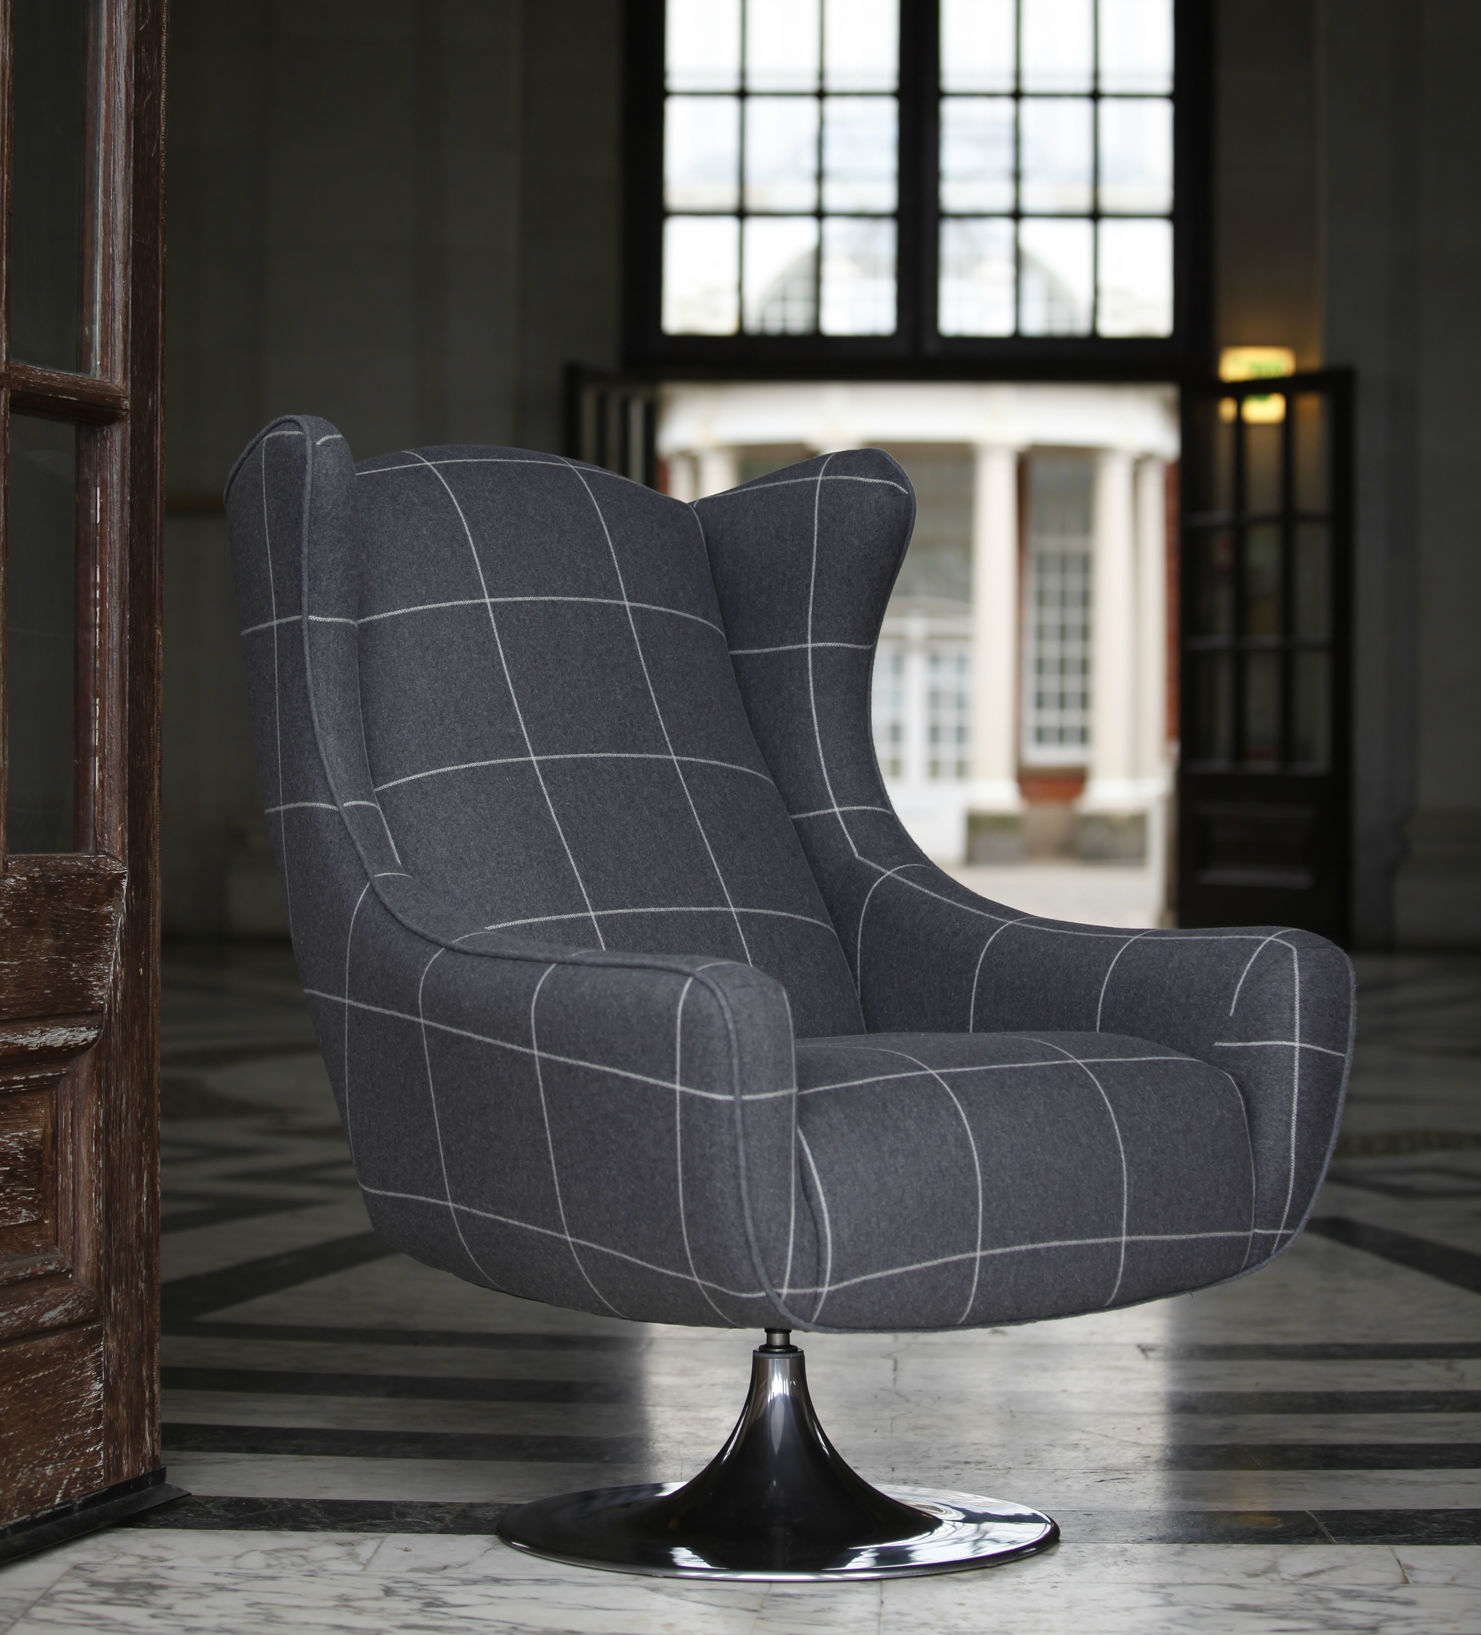 Genial Retro Styled Swivel Chair With A High Back And Polished Chrome Trumpet  Base. Please Click Here To Download A Specification Sheet For The Space Wing  Chair.